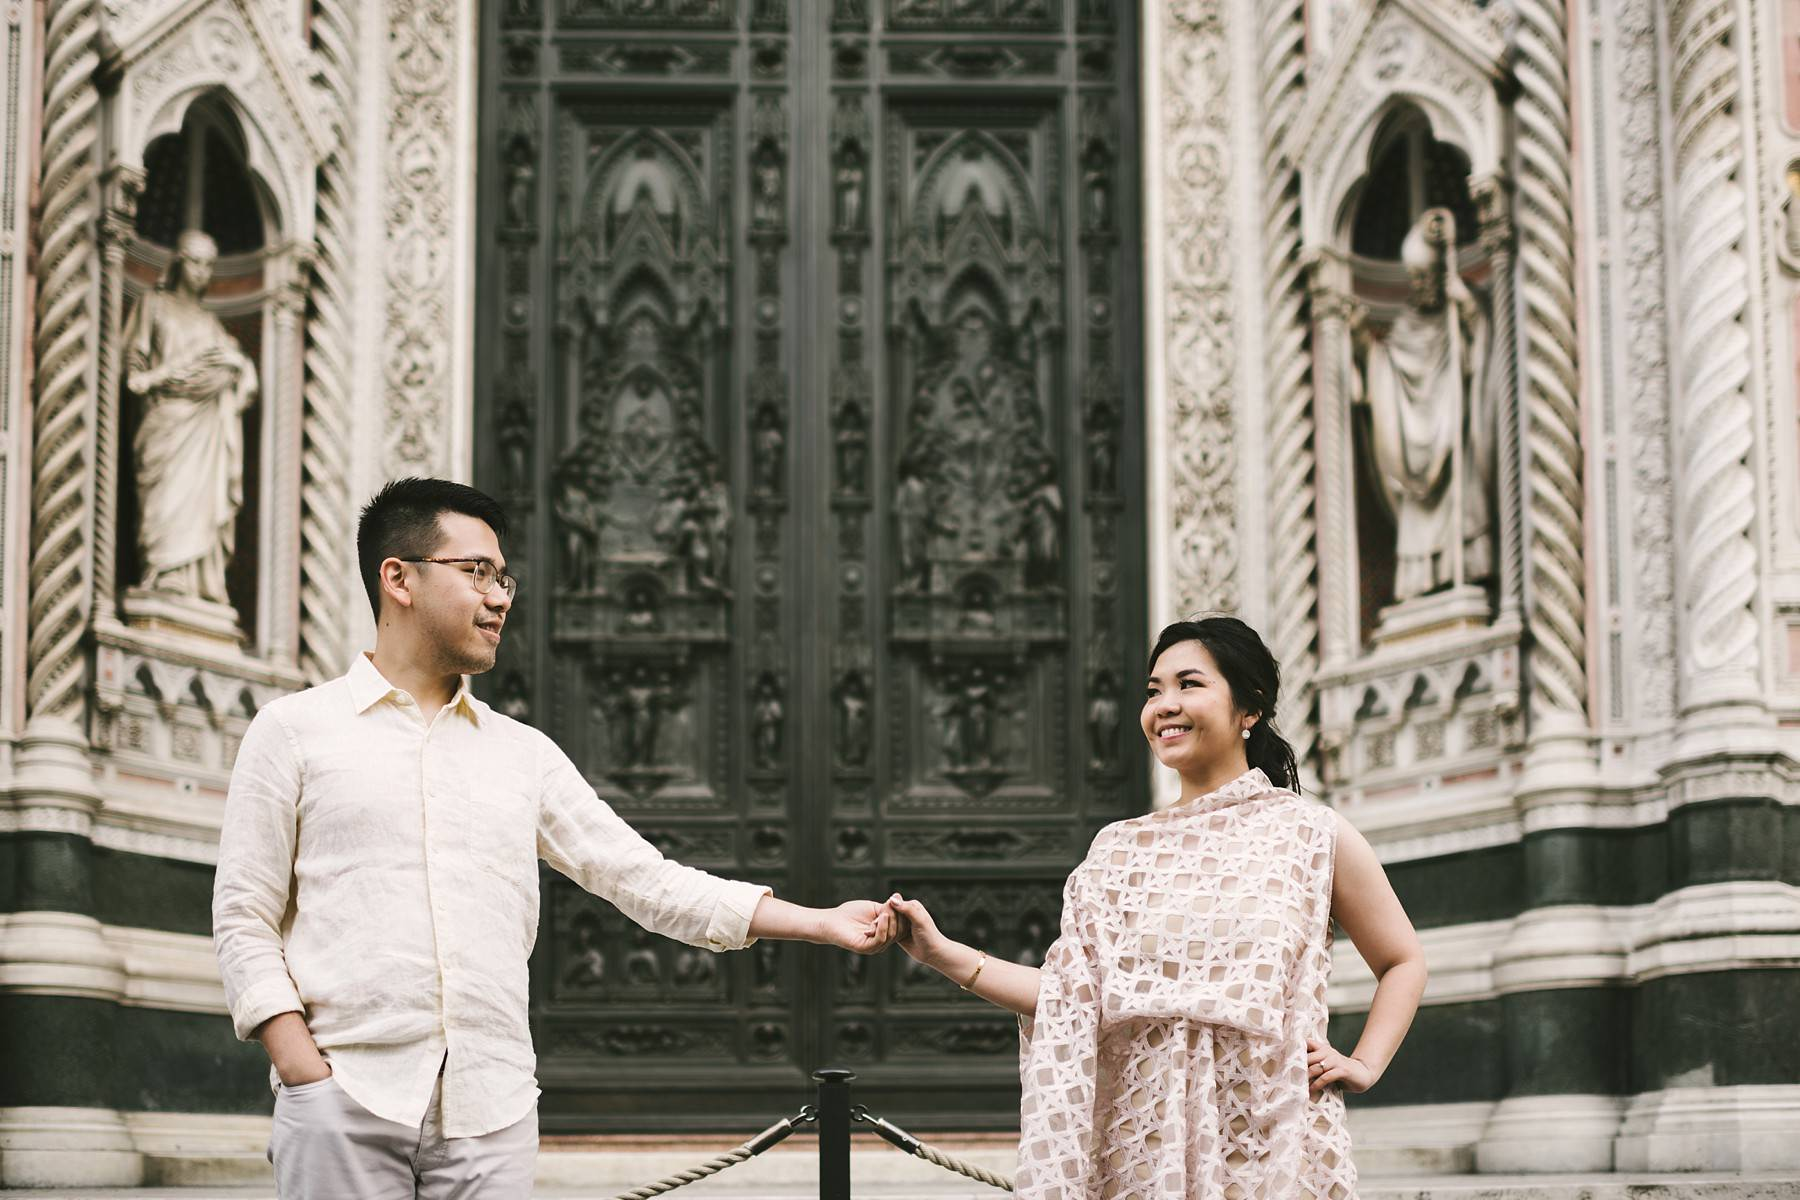 Lovely and romantic Asian couple engagement photo tour near Florentine Dome